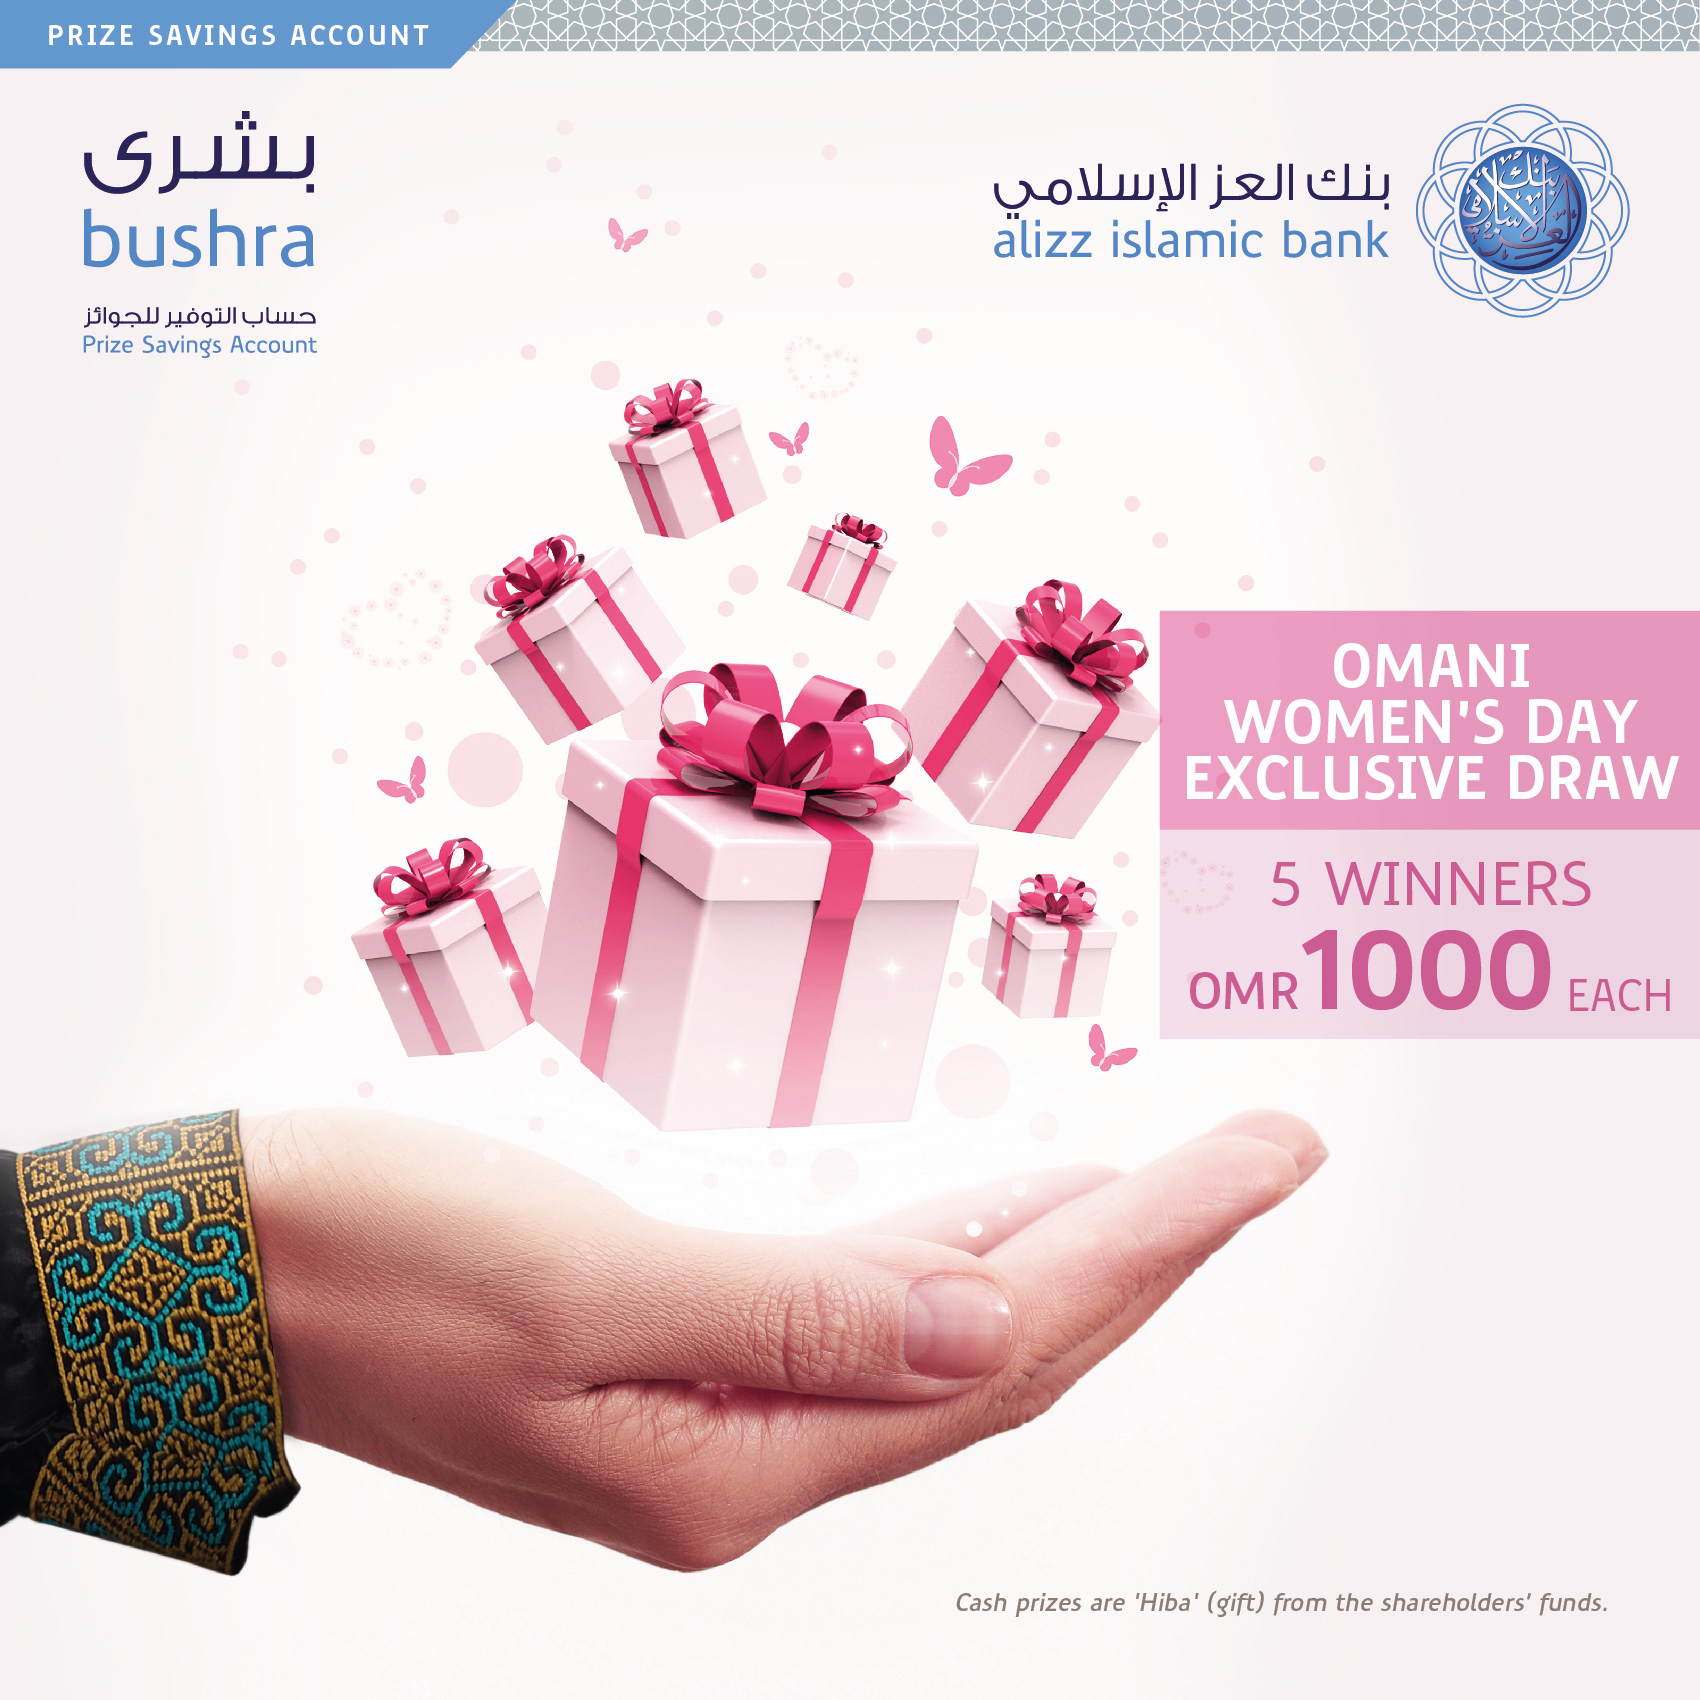 ALIZZ ISLAMIC BANK TO HOLD SPECIAL BUSHRA PRIZE SAVINGS ACCOUNT DRAW TO MARK OMANI WOMEN'S DAY